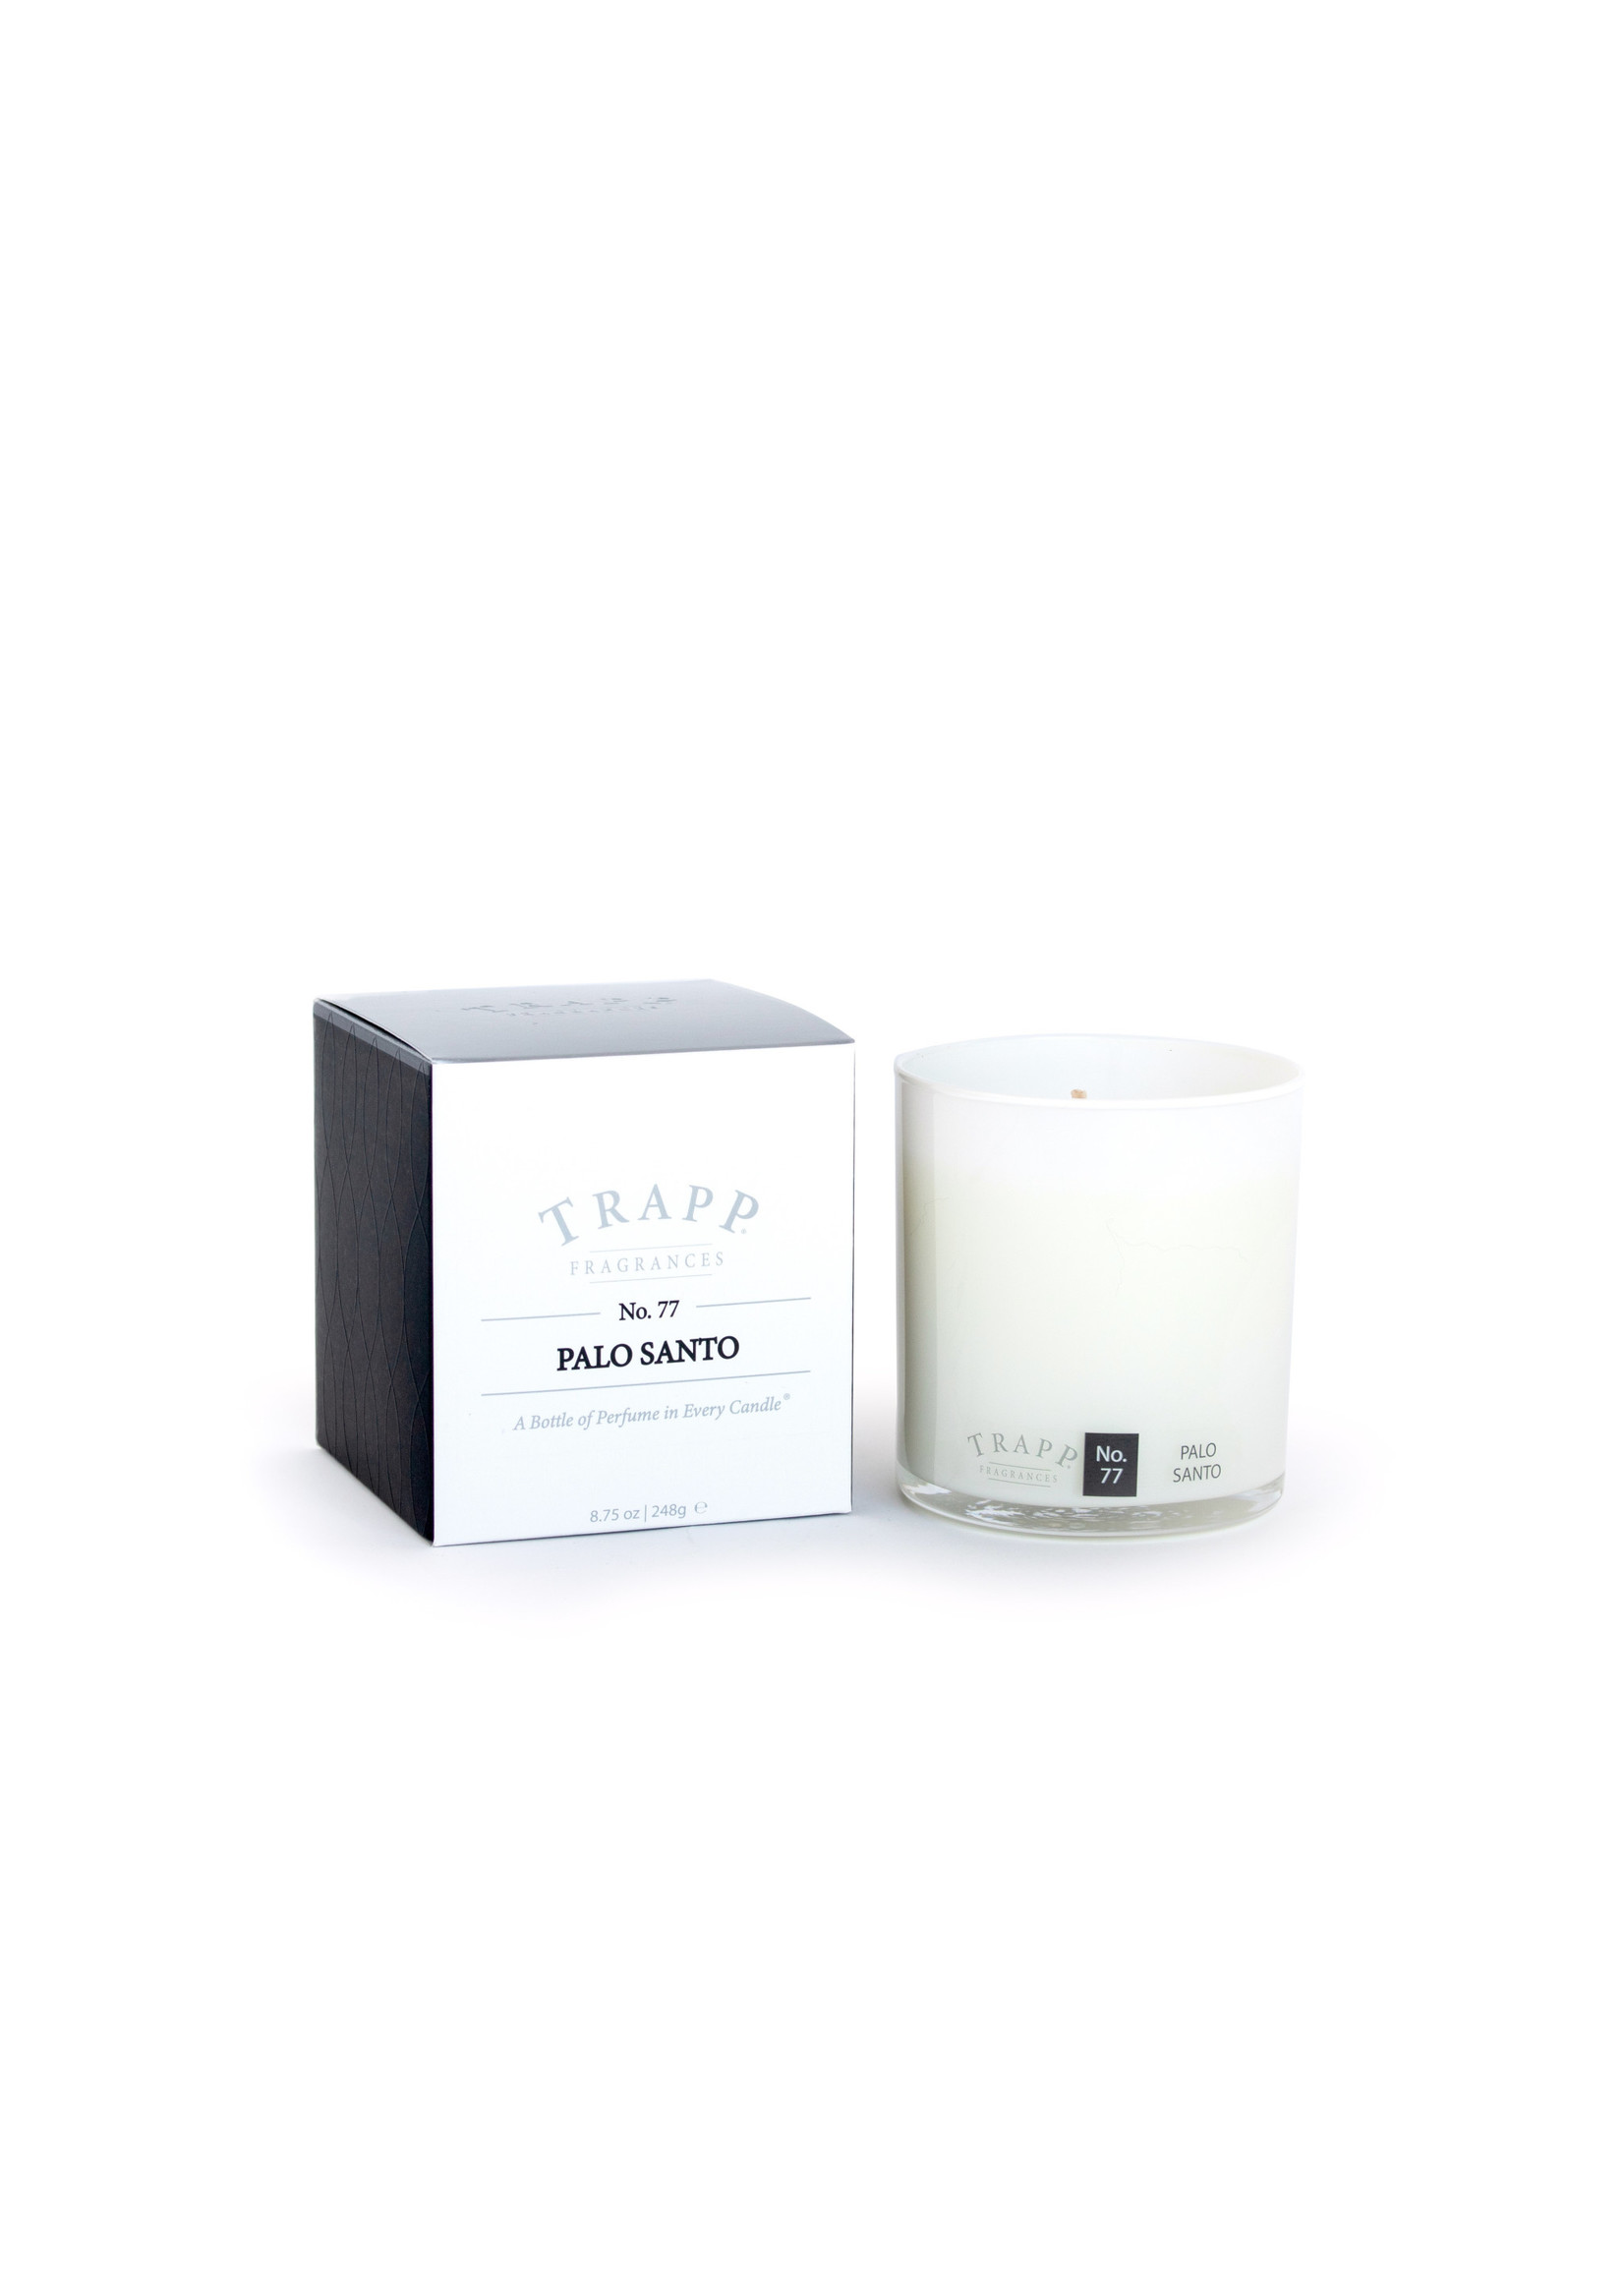 Trapp Candles Ambiance Collection - No. 77 Palo Santo - 8.75 oz. Poured Candle